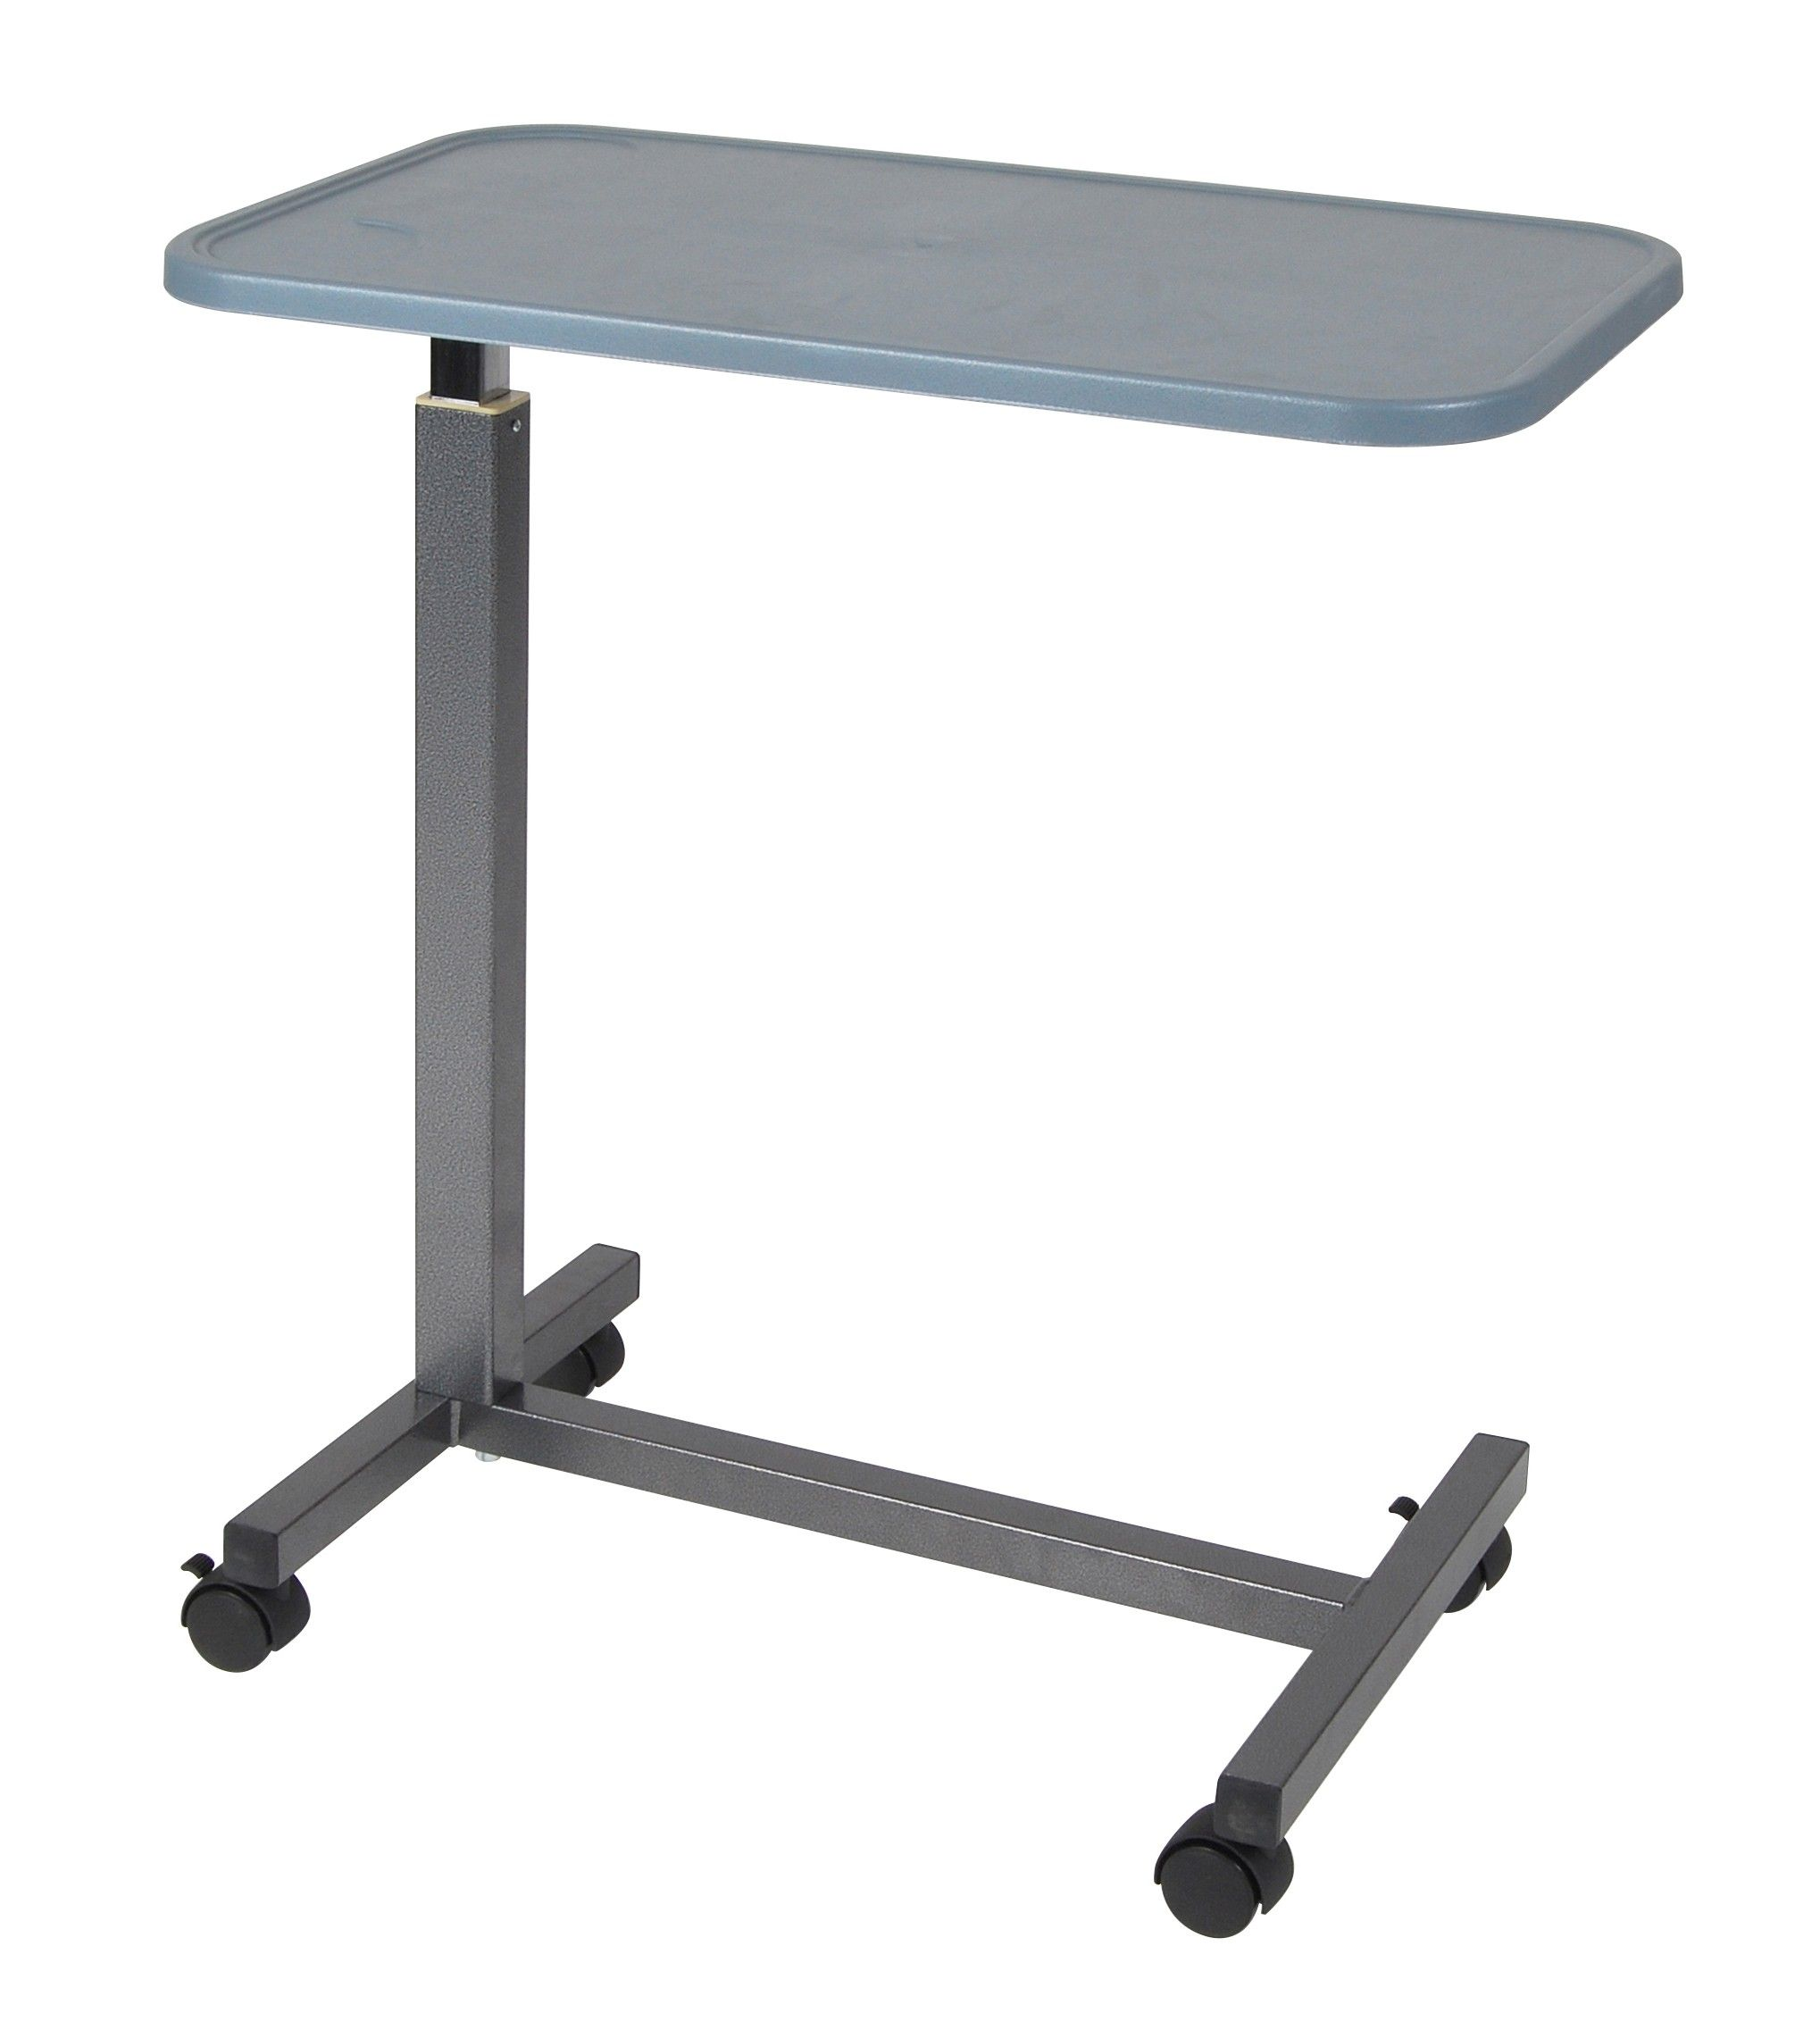 The Overbed Table with Plastic Top gives you a stable